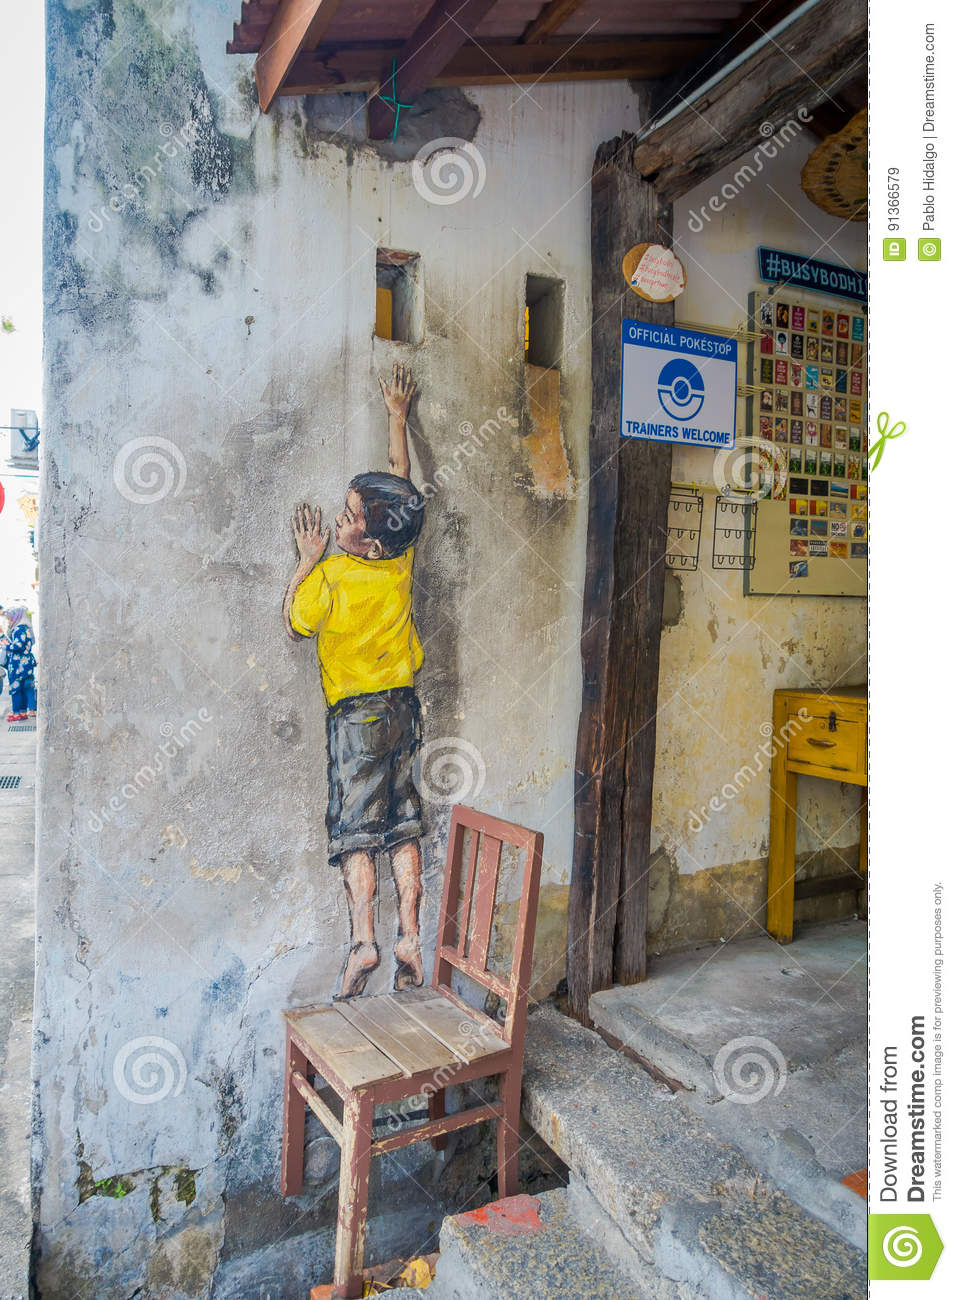 Street art graffiti of boy standing on a chair in george town city centre malaysia